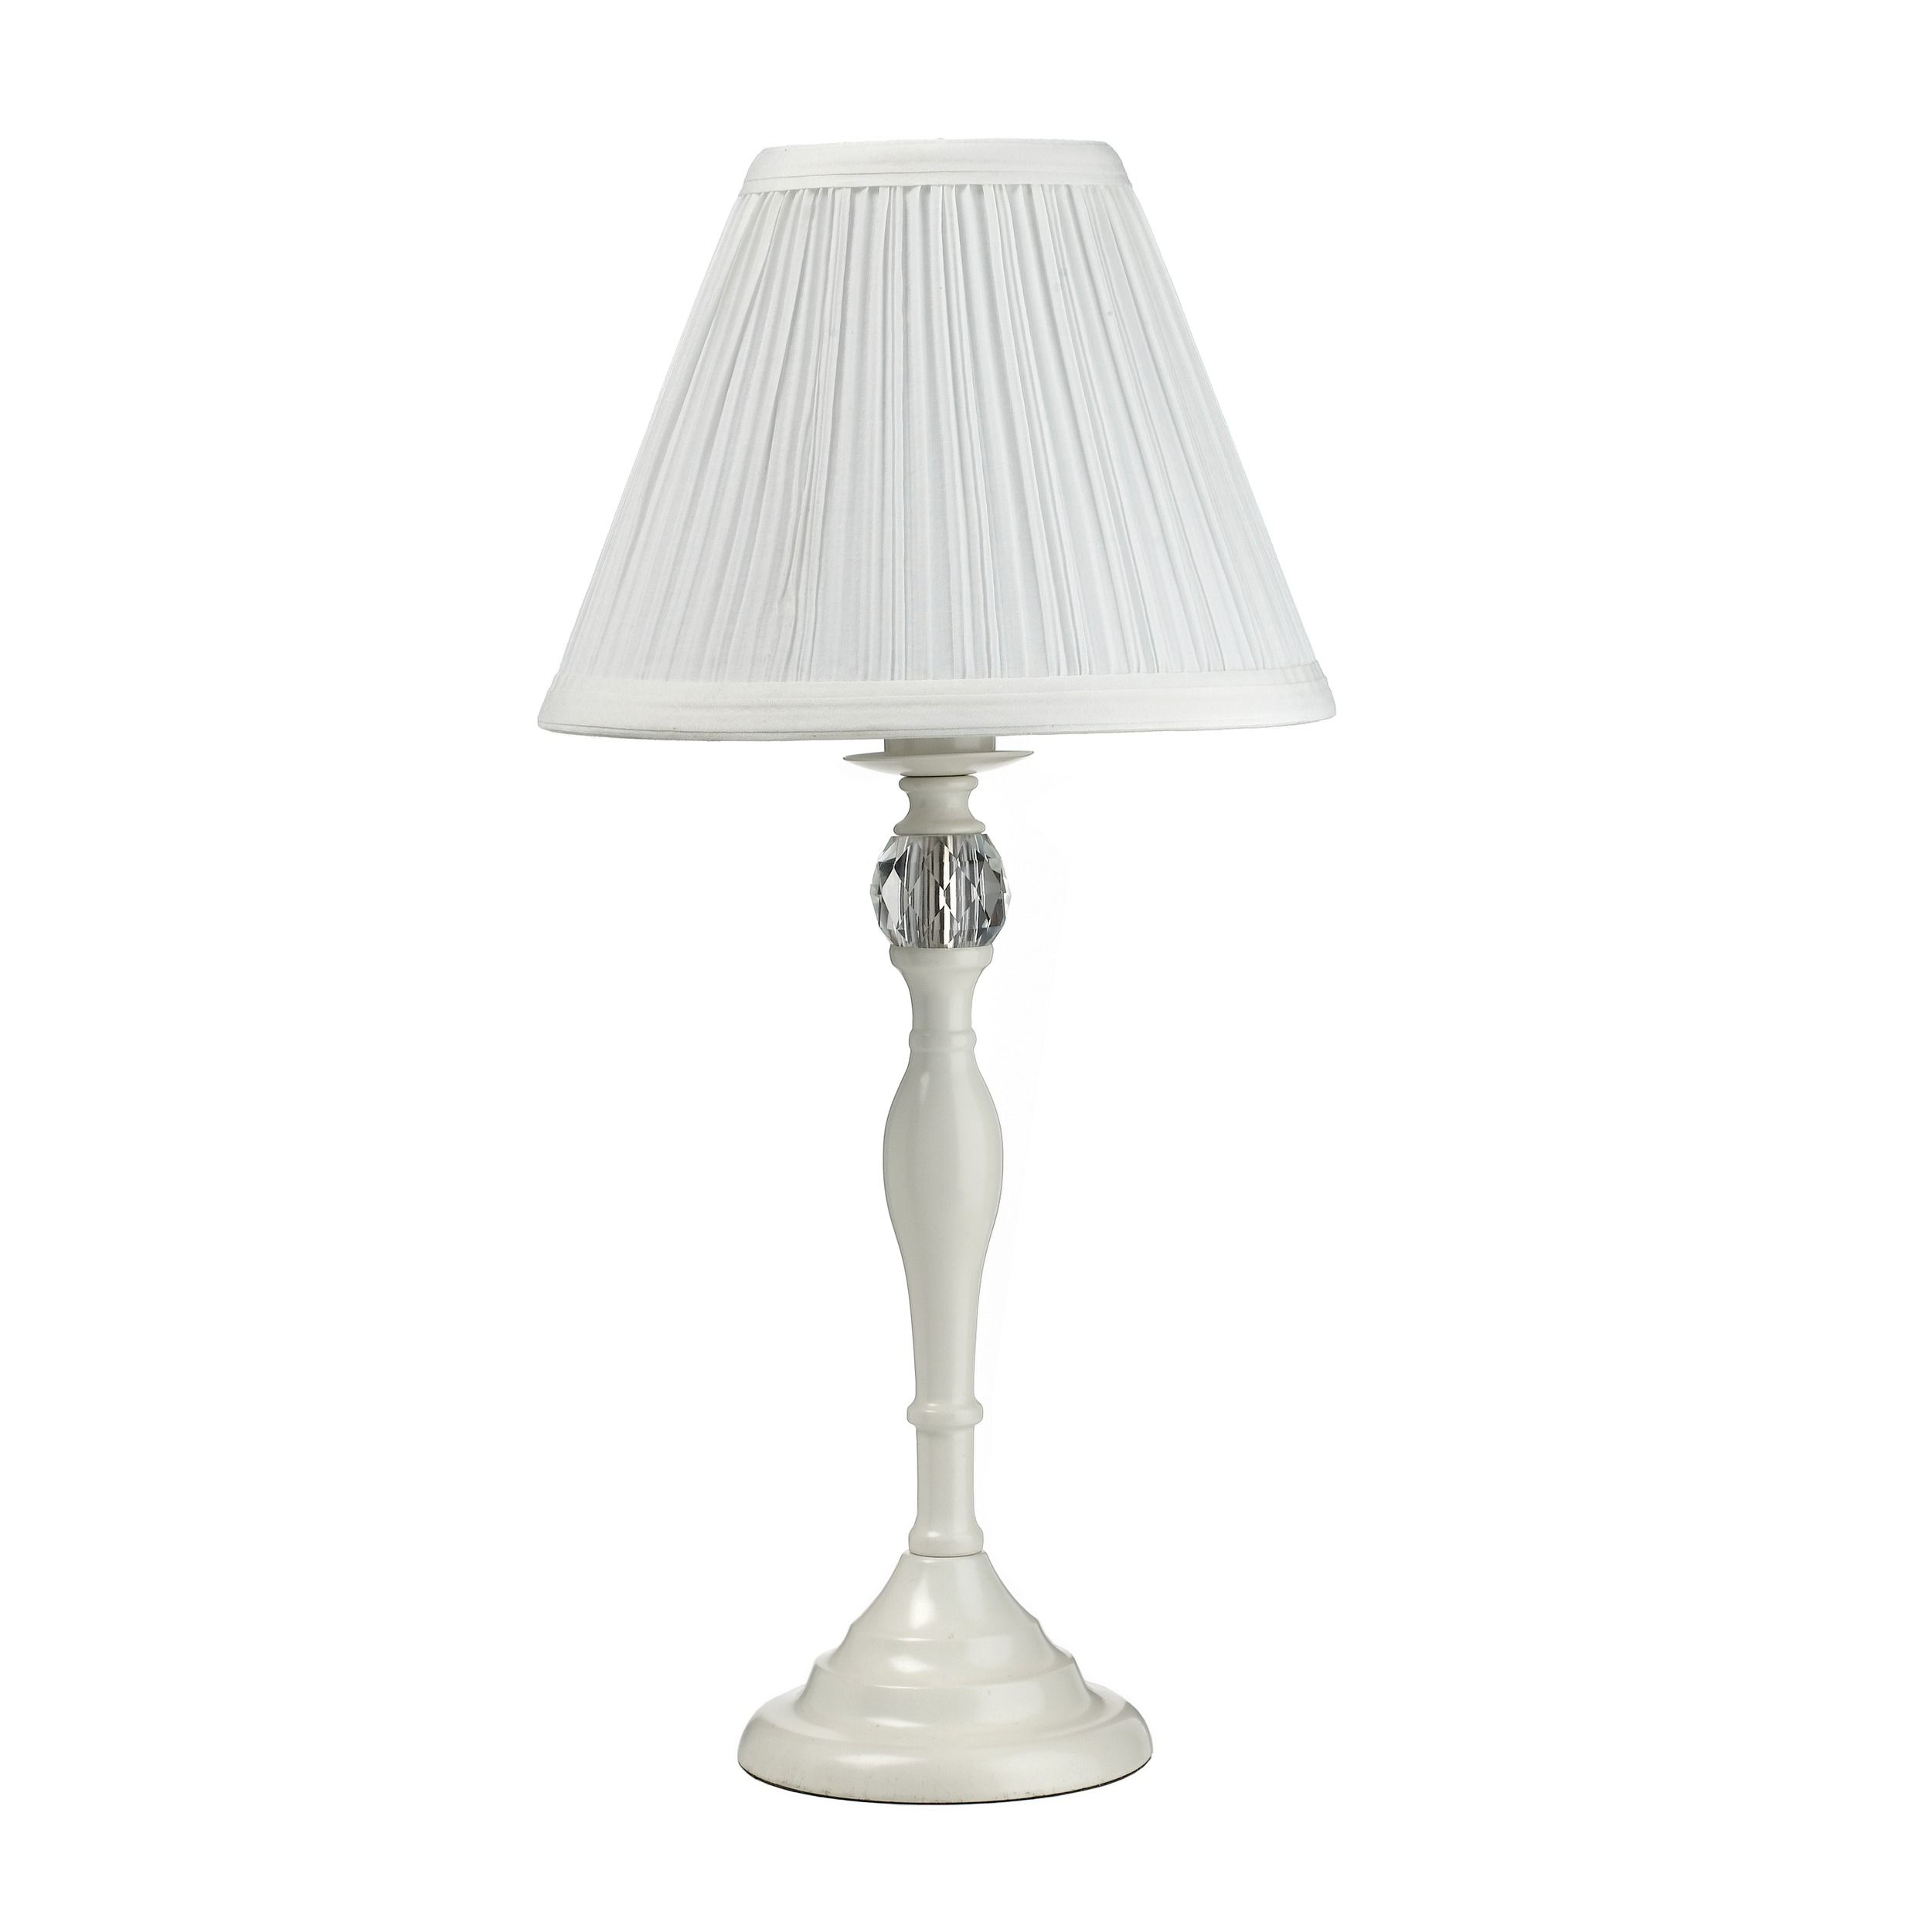 Ellis Cream Touch Lamp With Shade House Lamp Lamp Touch Lamp